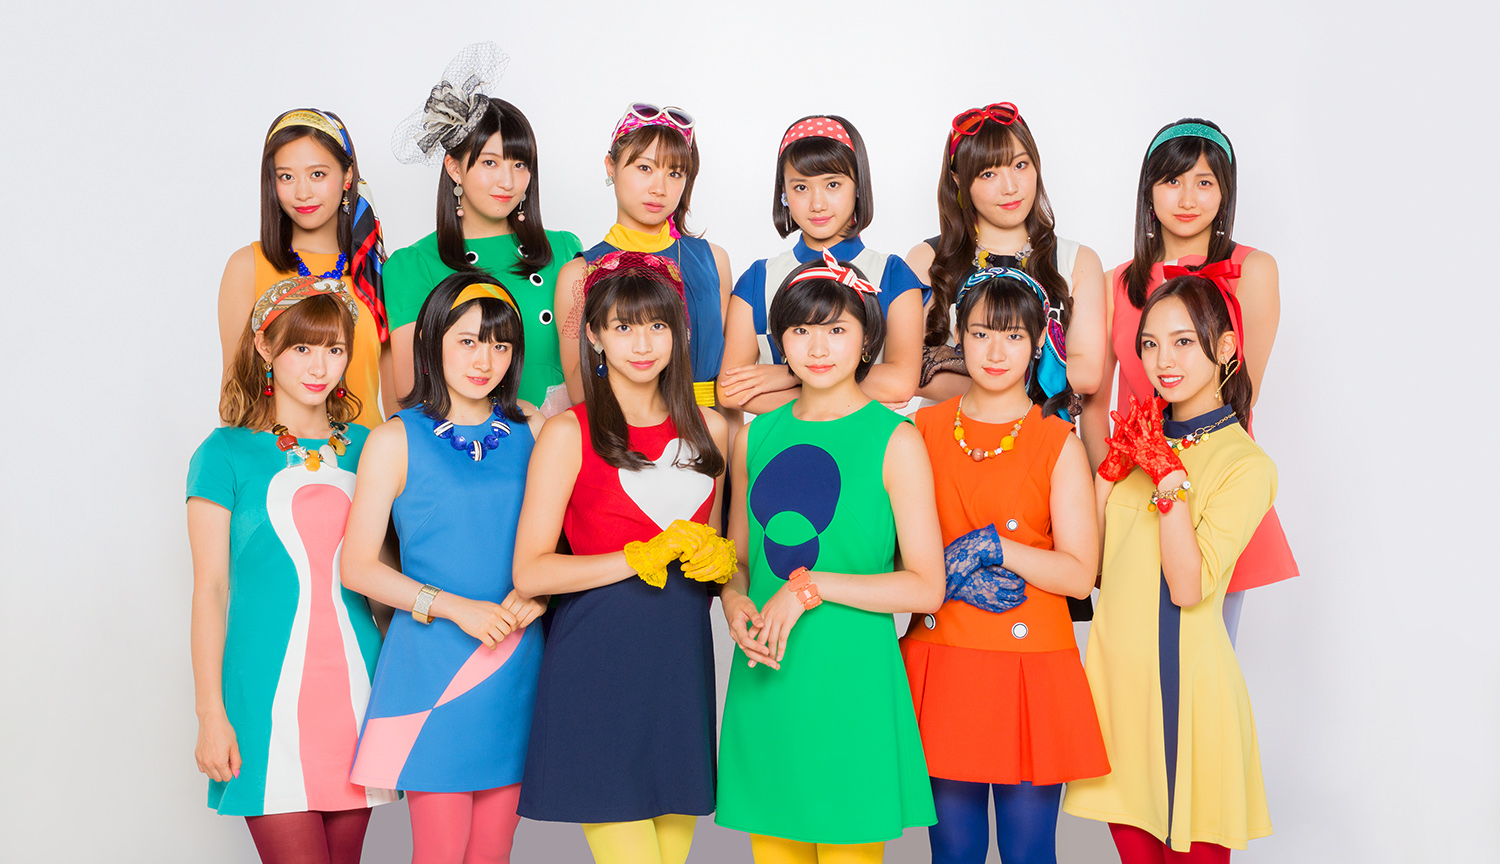 RMMS-Morning-Musume-18-Kawaii-Kakkoii-Sugoi-interview-2019-A